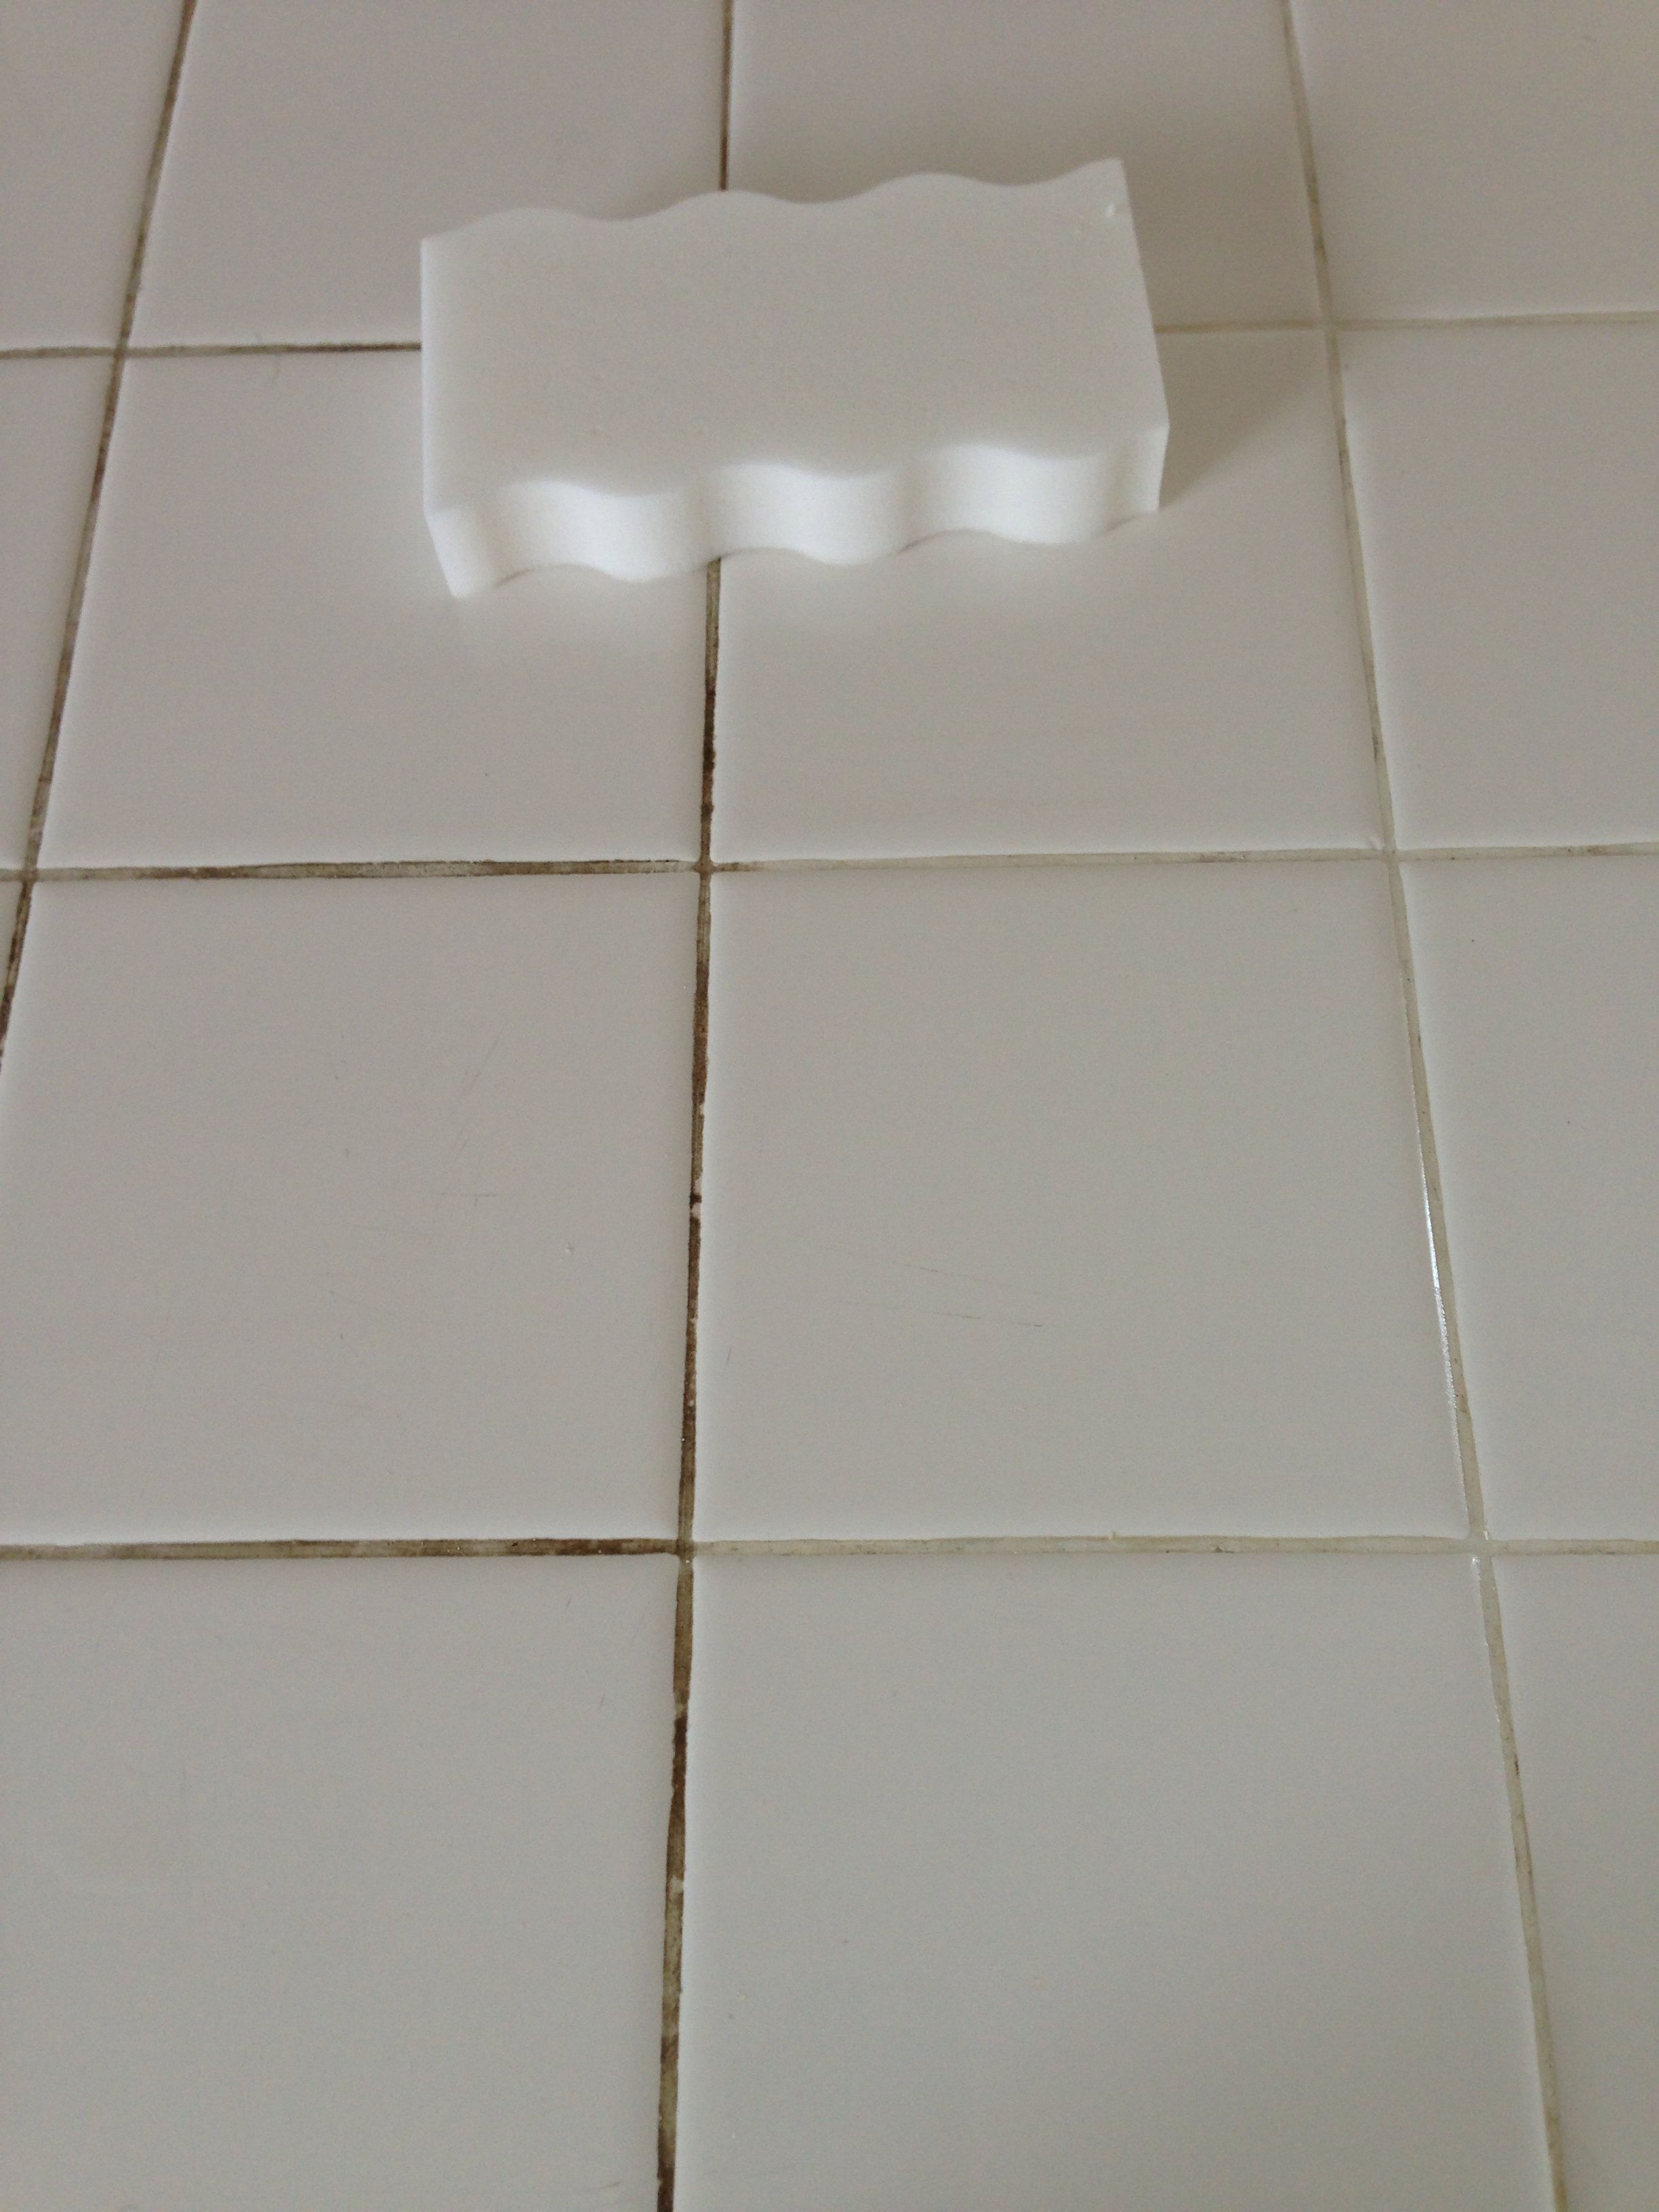 Grout Cleaner Mr Clean Magic Eraser Extra Power It Really Worked